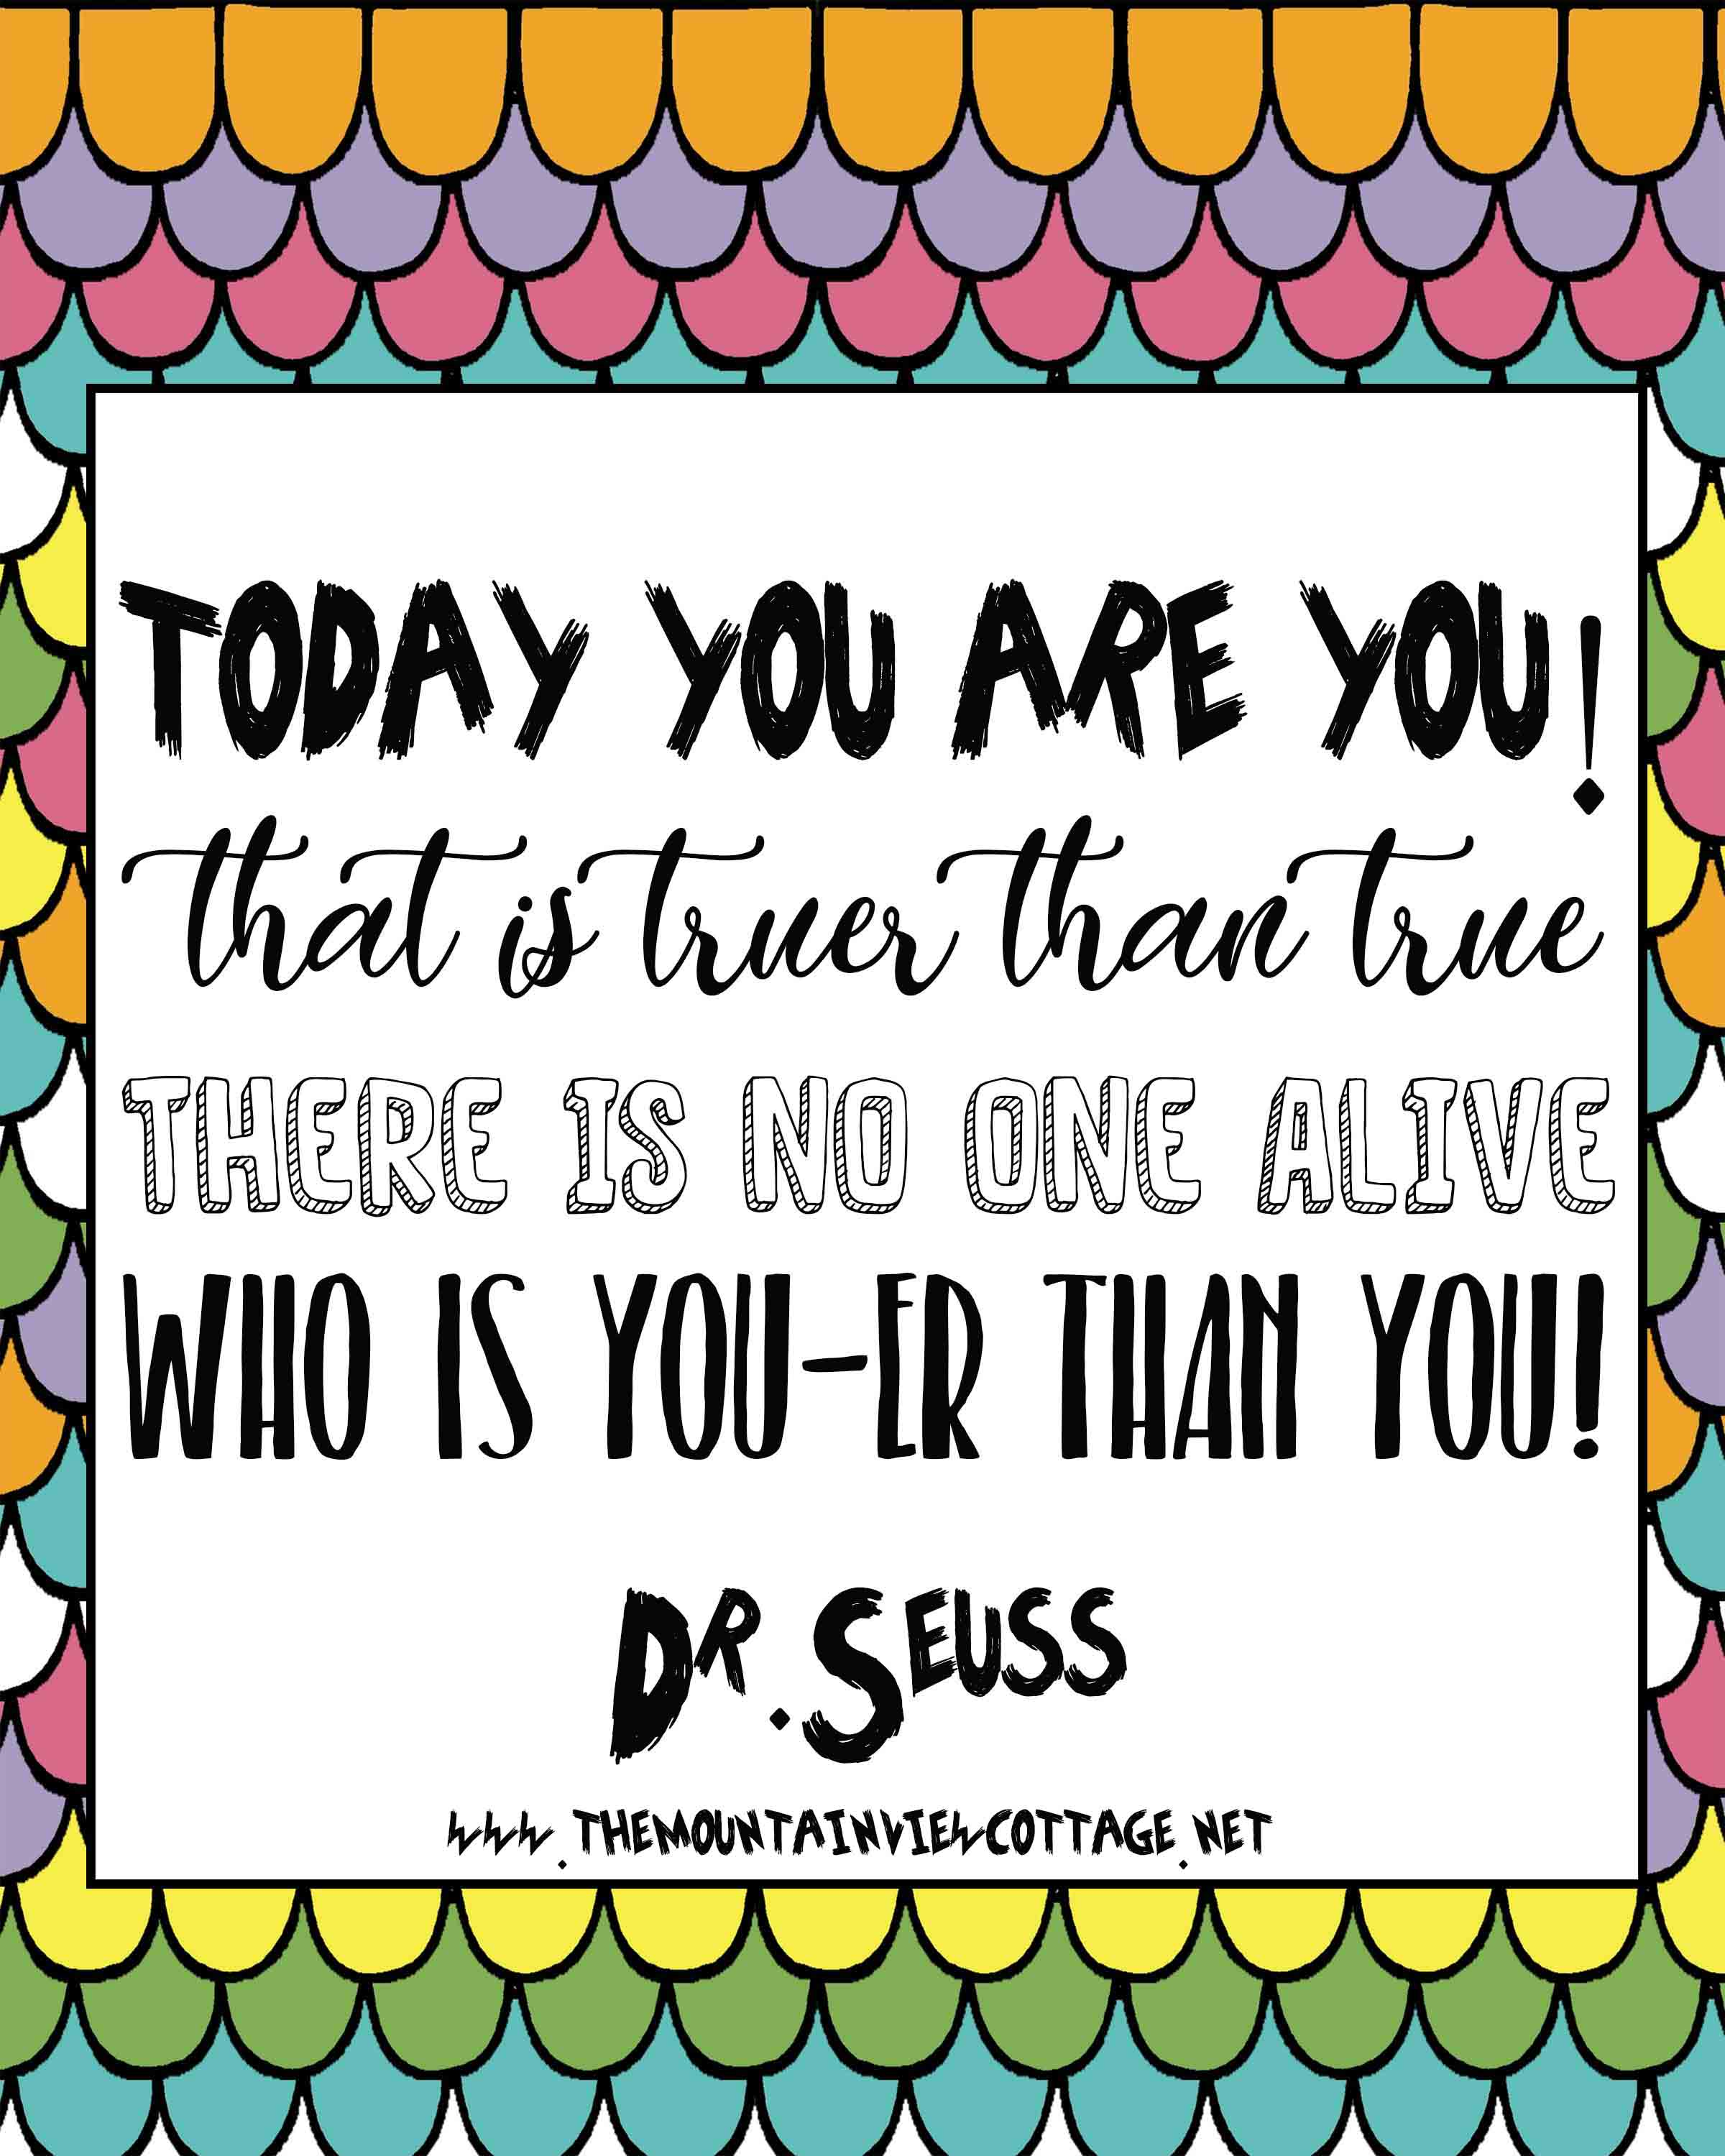 unique quotes-Dr. Seuss quotes-today you are you that is Truer than true there is no one alive who is you-er than you